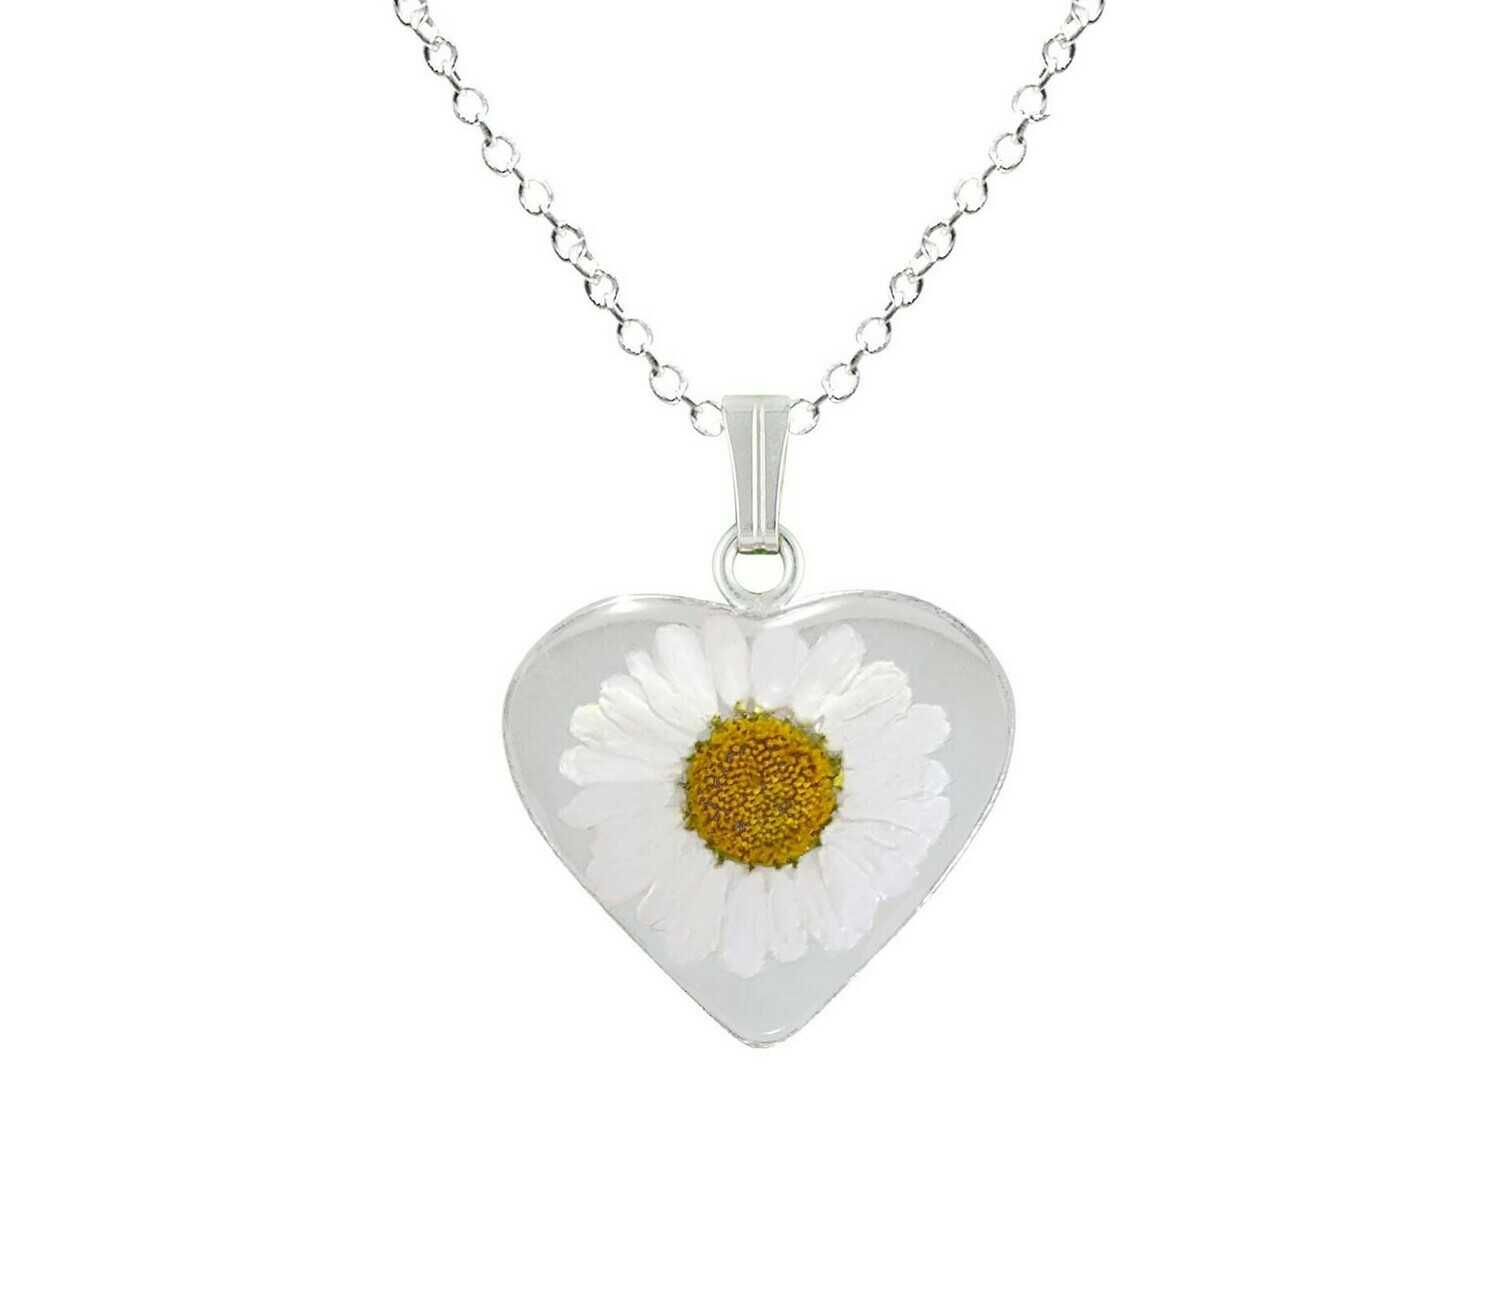 Daisy Necklace, Medium Heart, Transparent